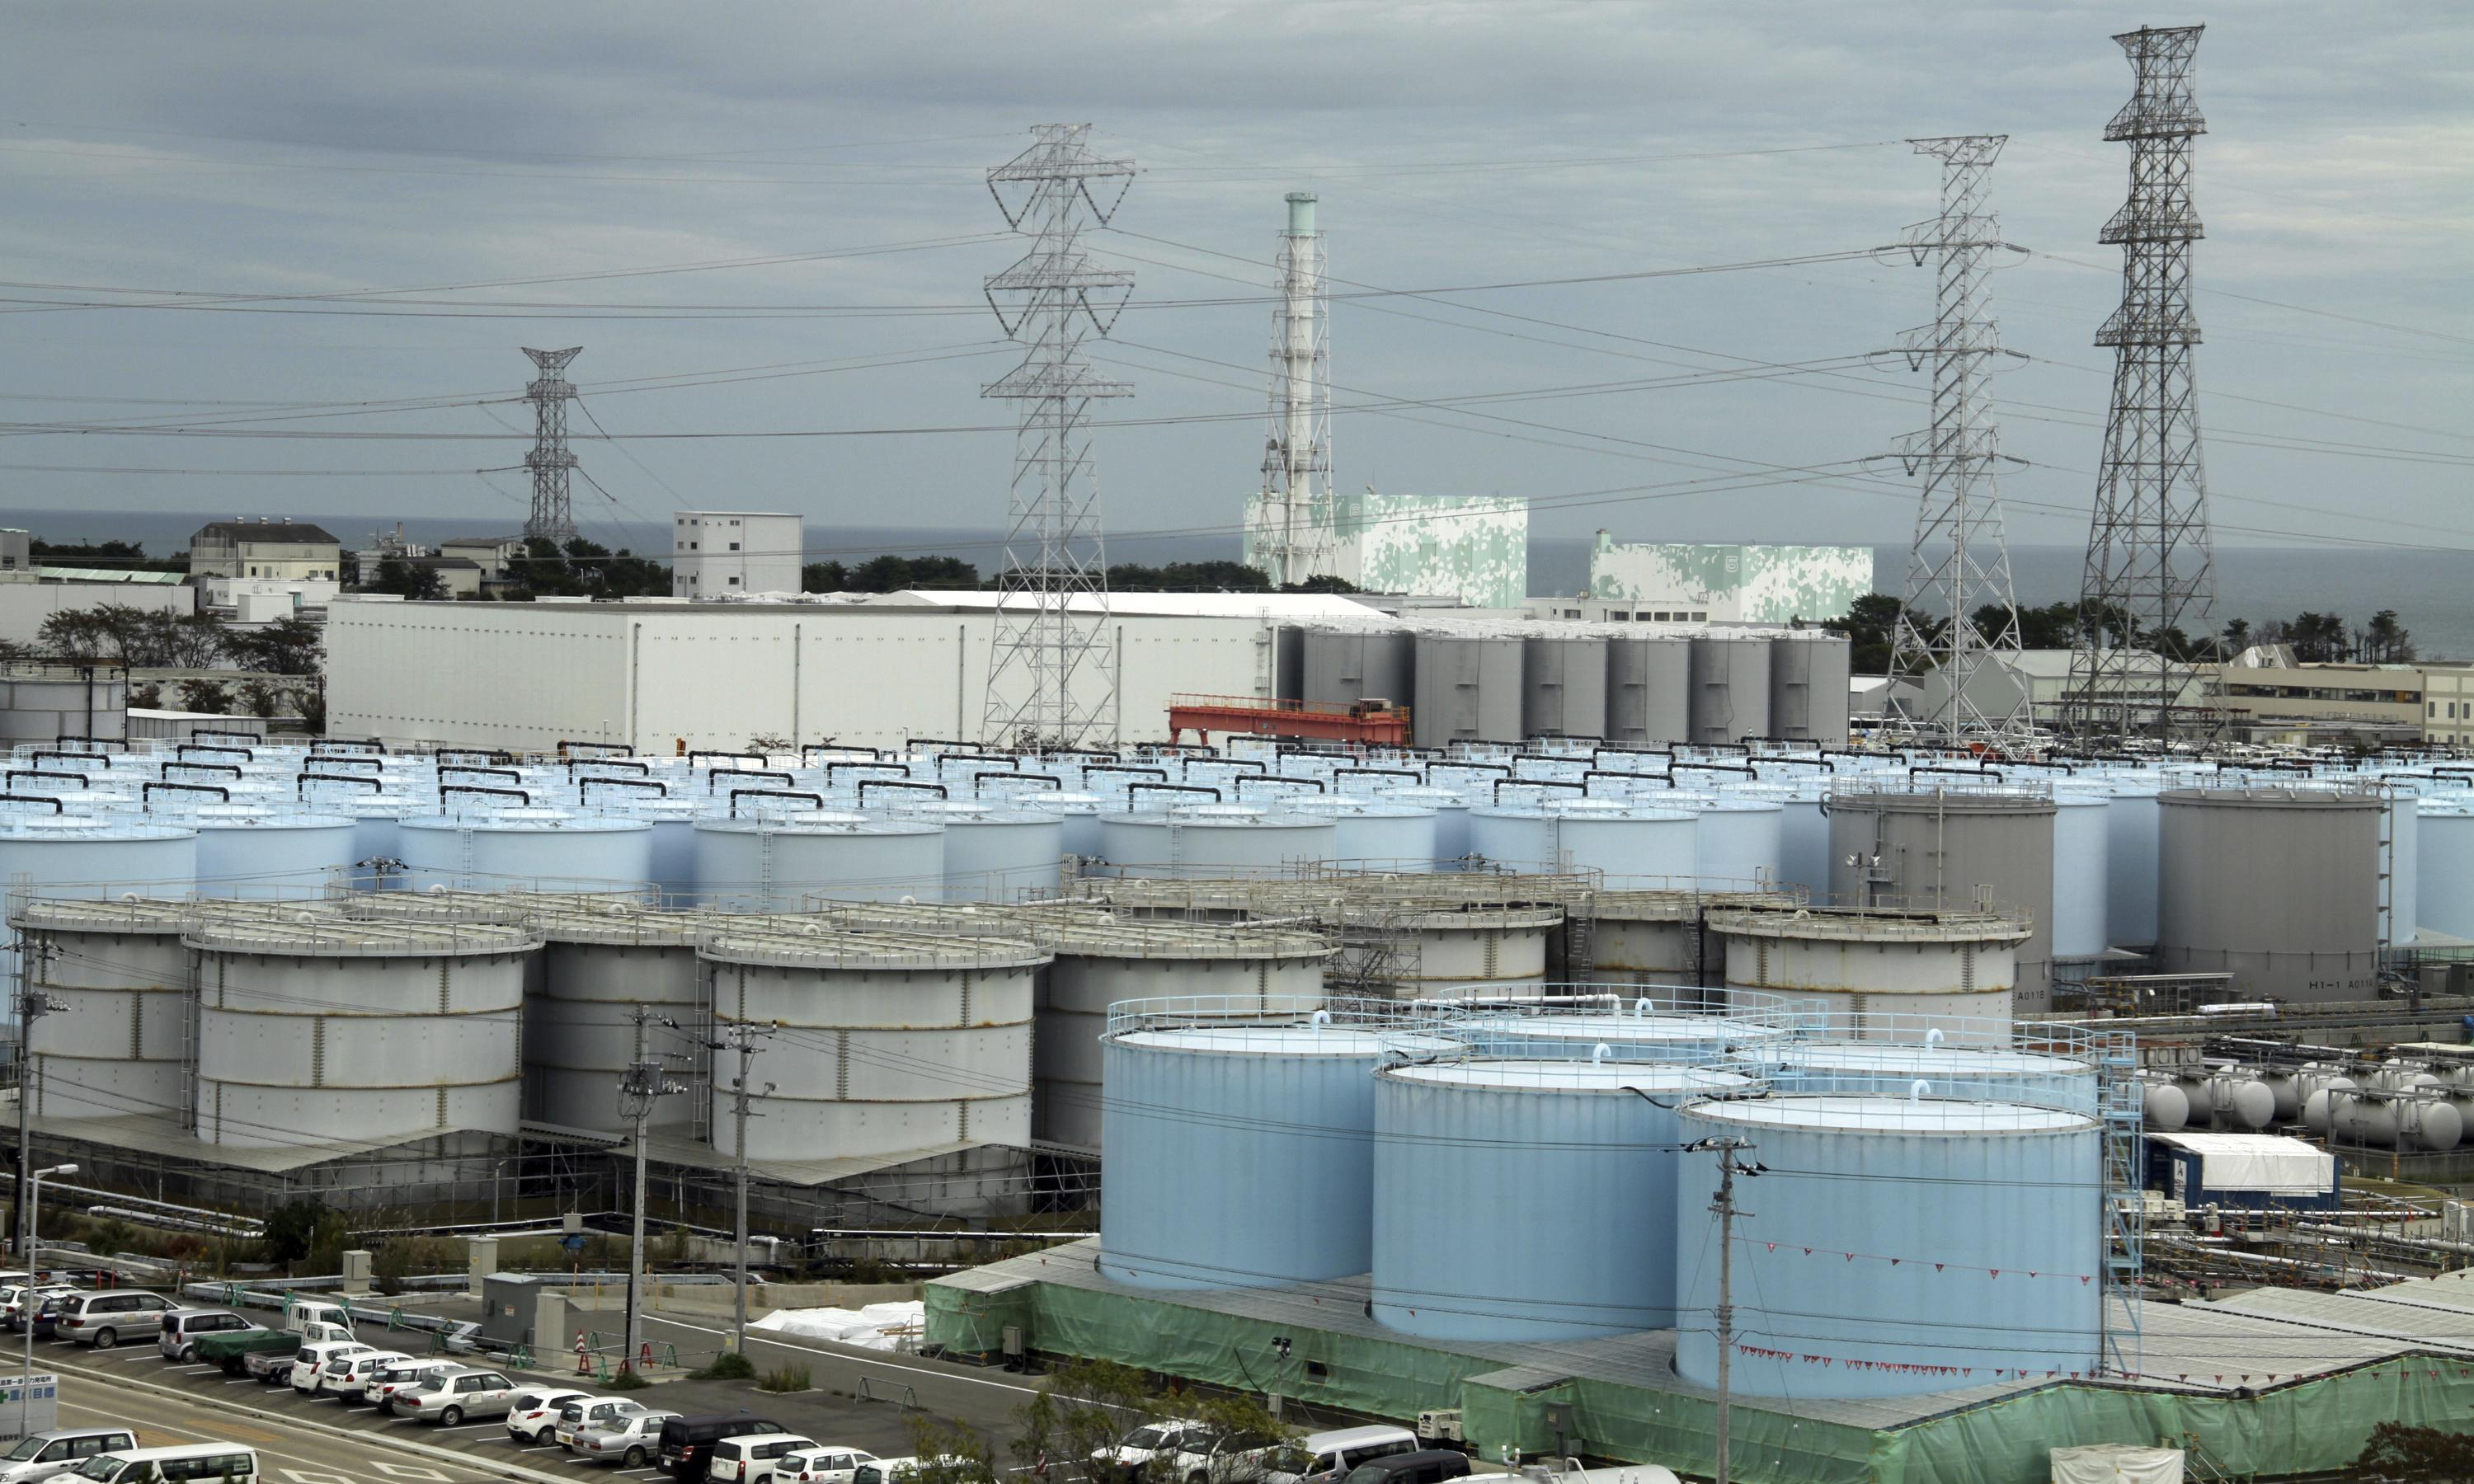 Fukushima radioactive water should be released into ocean, say Japan experts